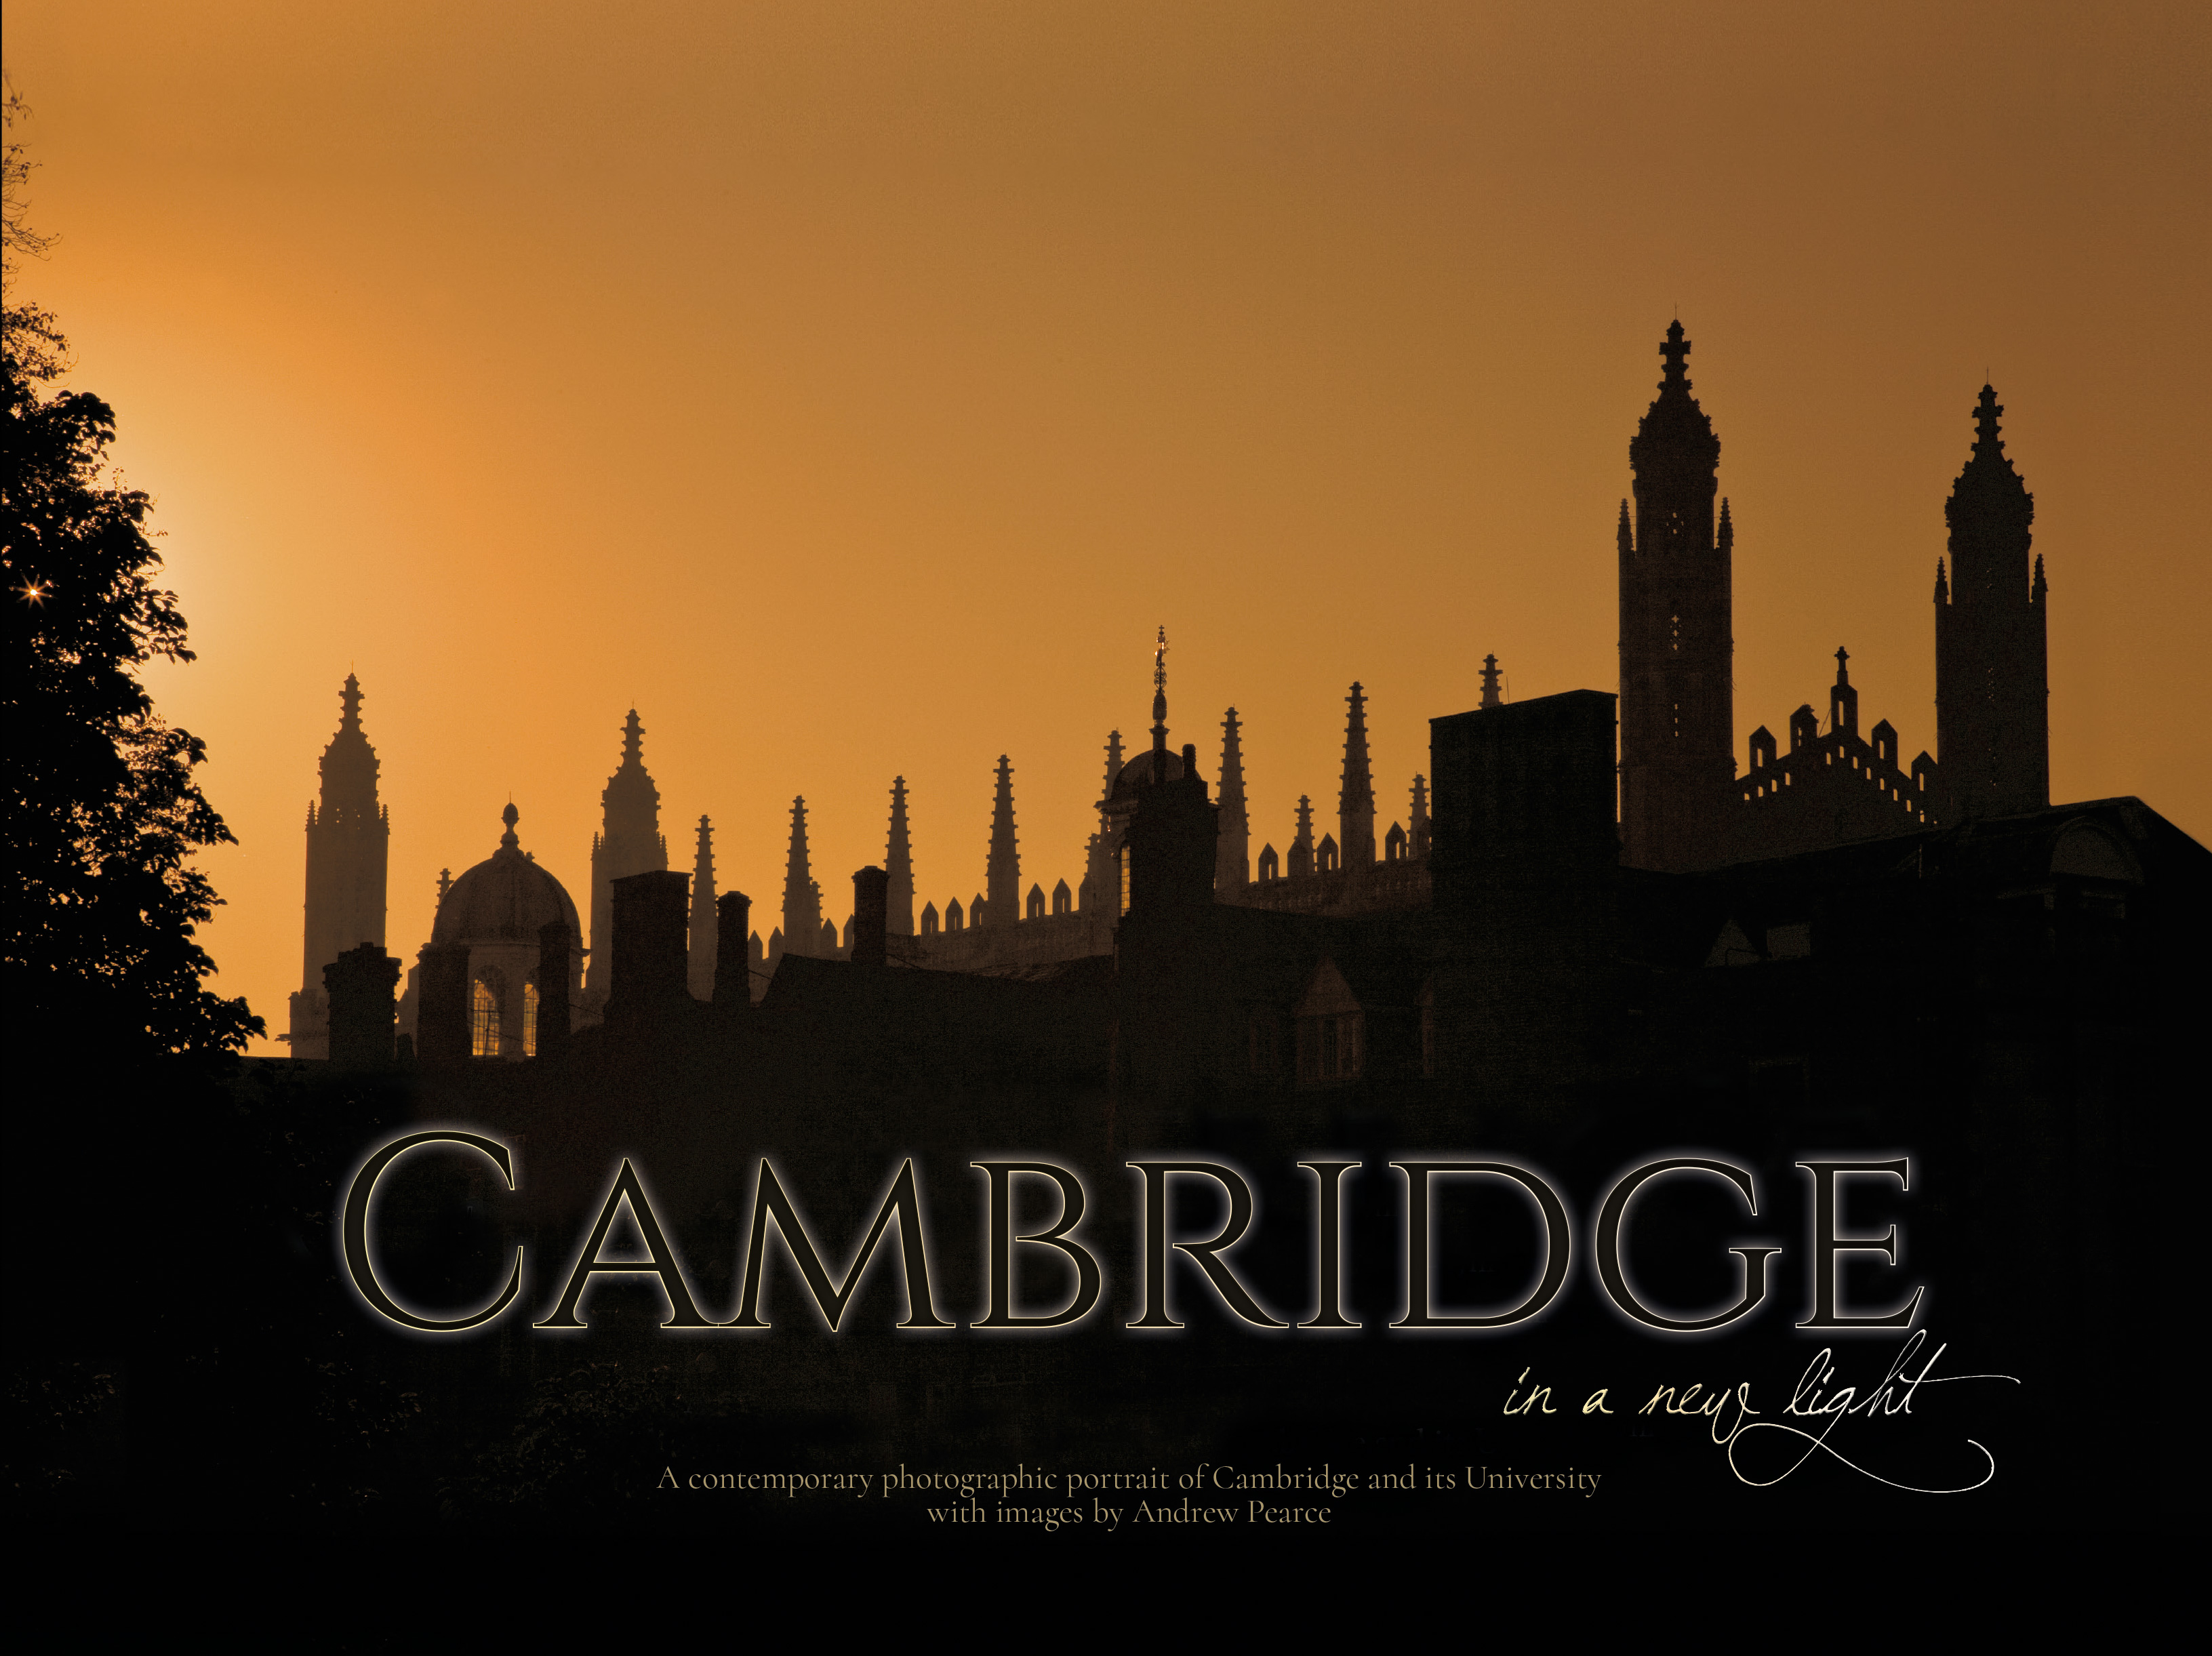 Our latest book on Cambridge - coming soon!